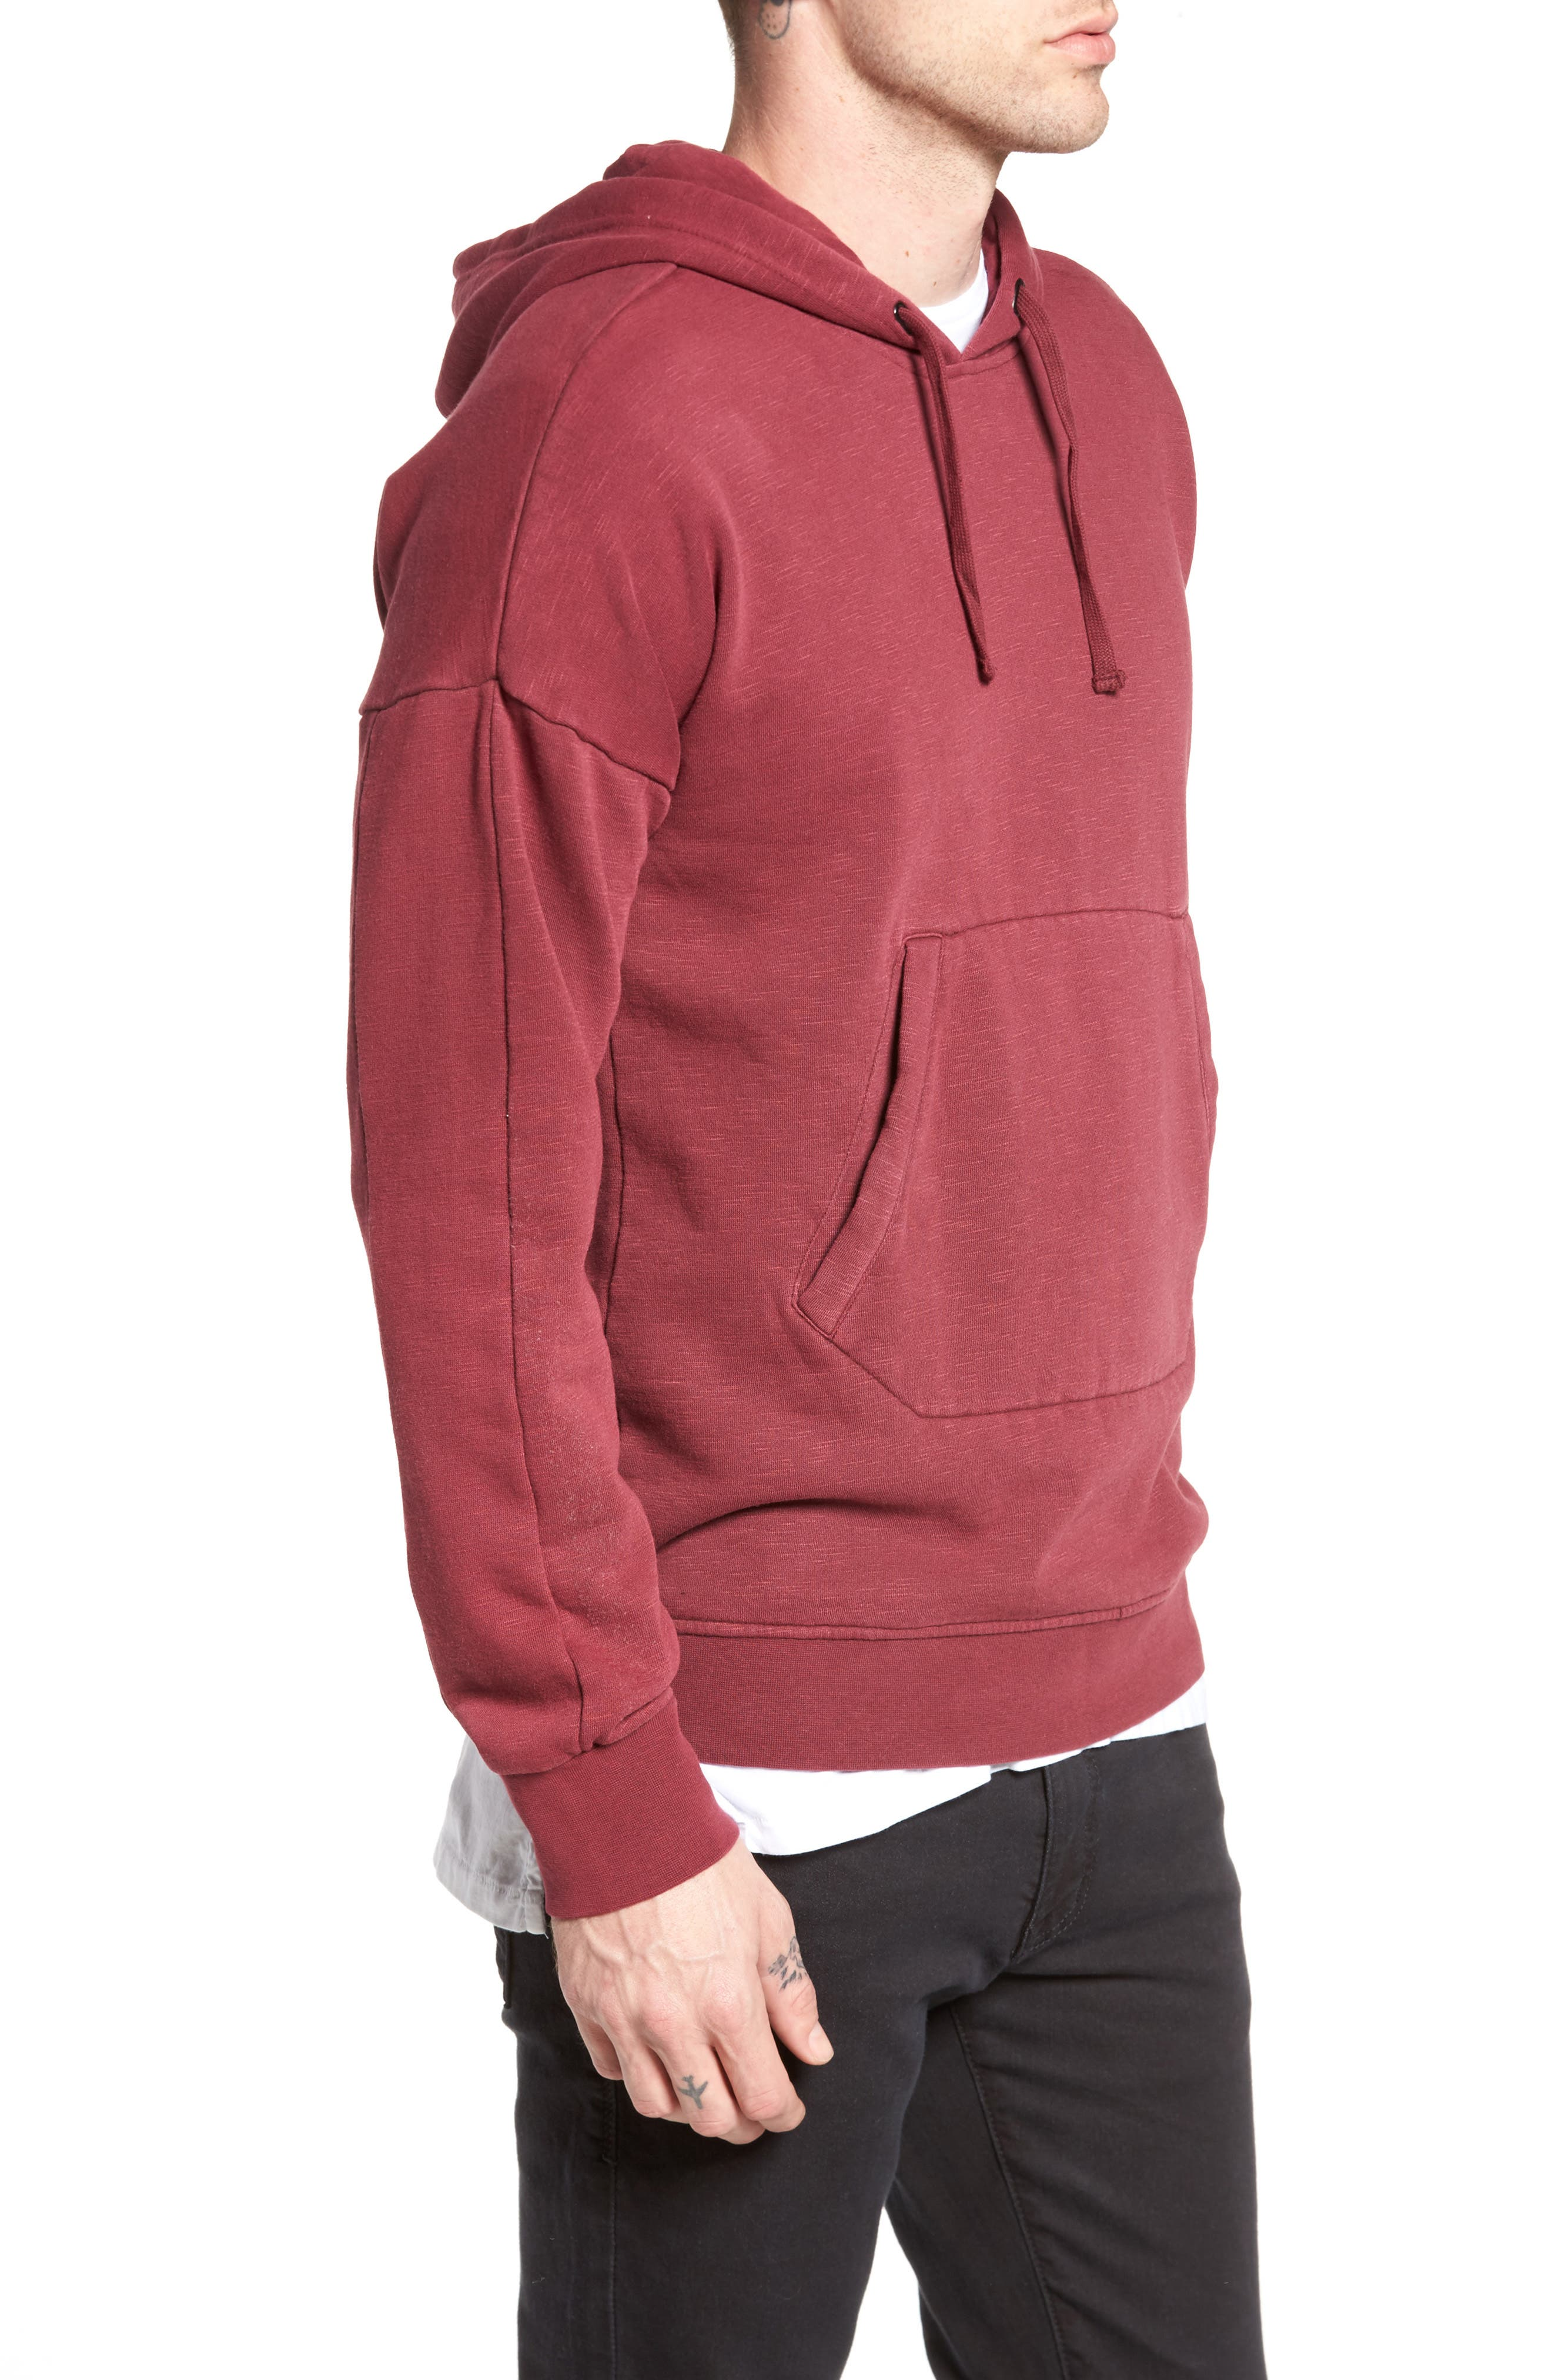 Turf Hooded Sweatshirt,                             Alternate thumbnail 3, color,                             Rosewood